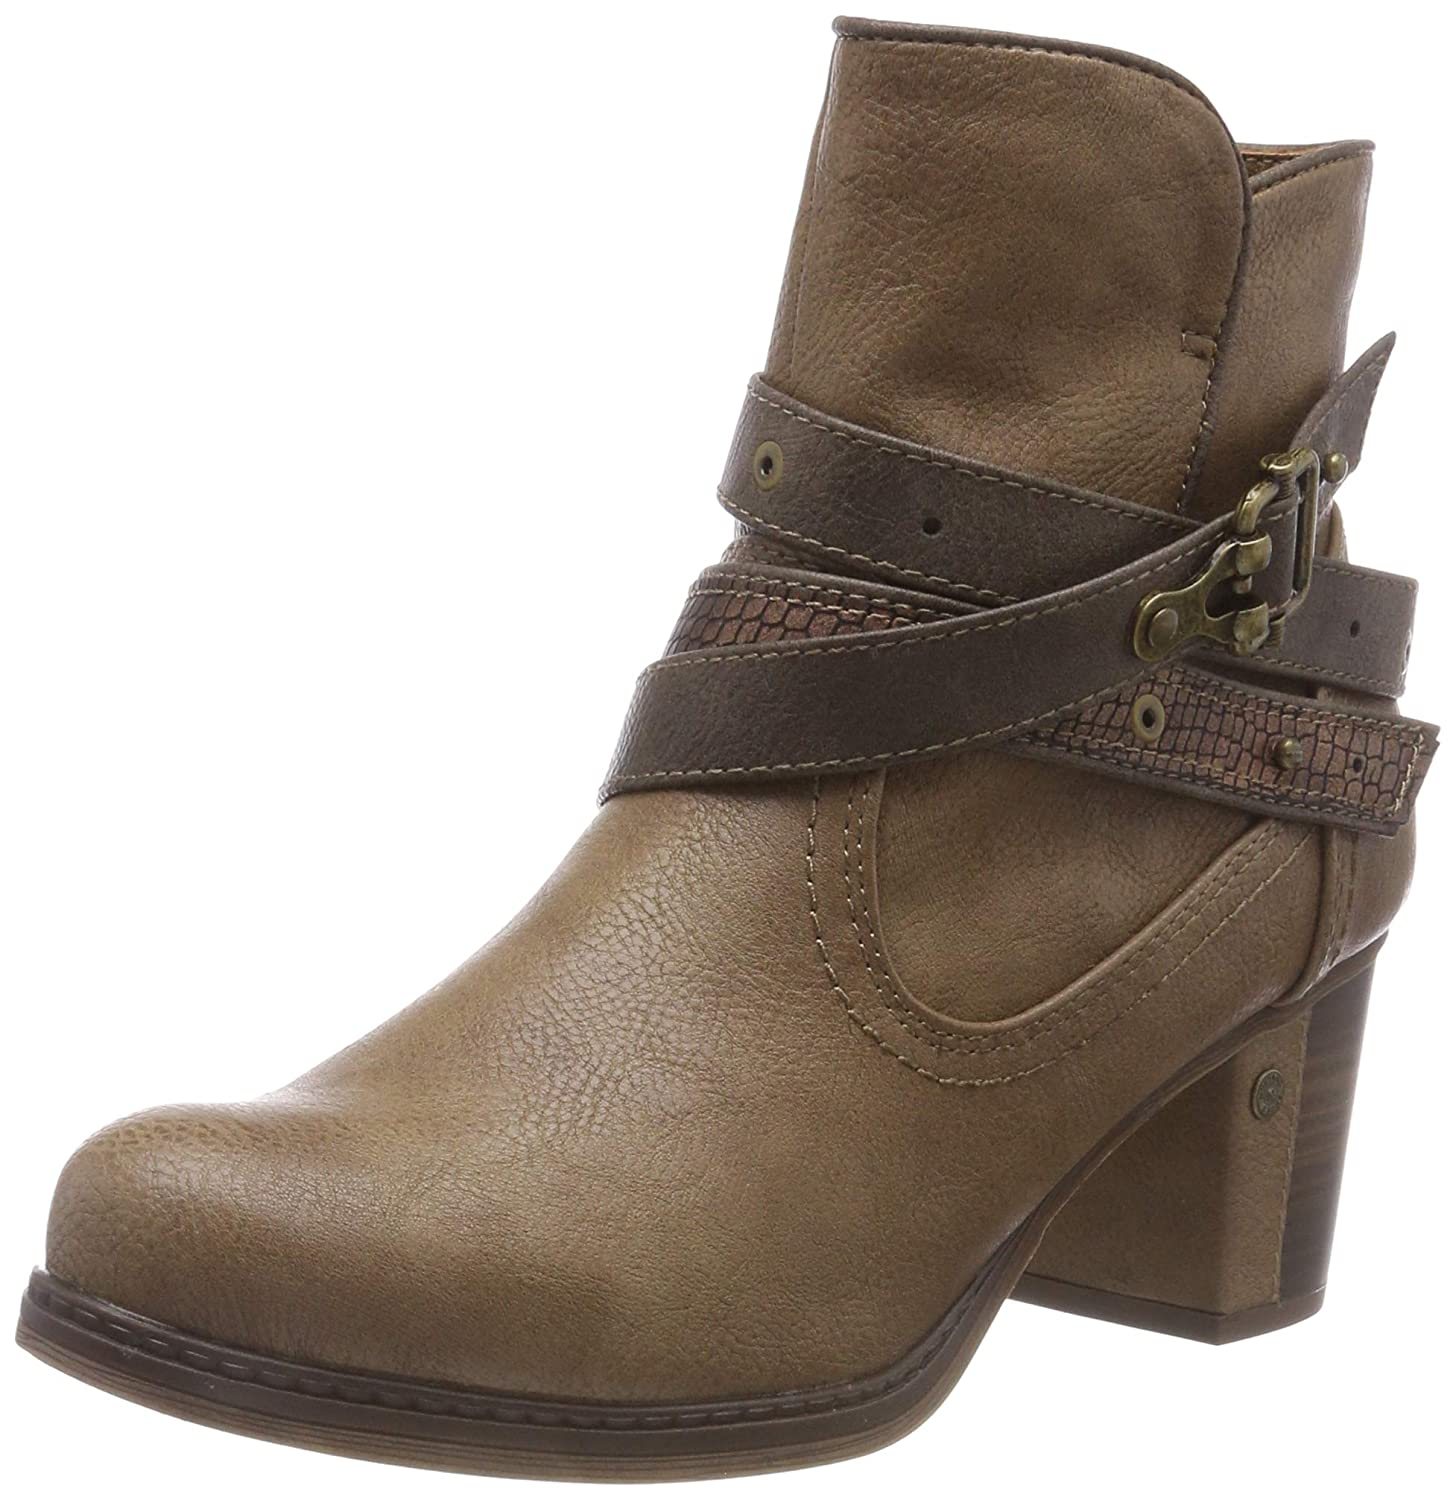 Mustang B07C86M6CY Stiefelette, Mustang Botines (Taupe Femme Marron (Taupe 318) 7307ba7 - reprogrammed.space